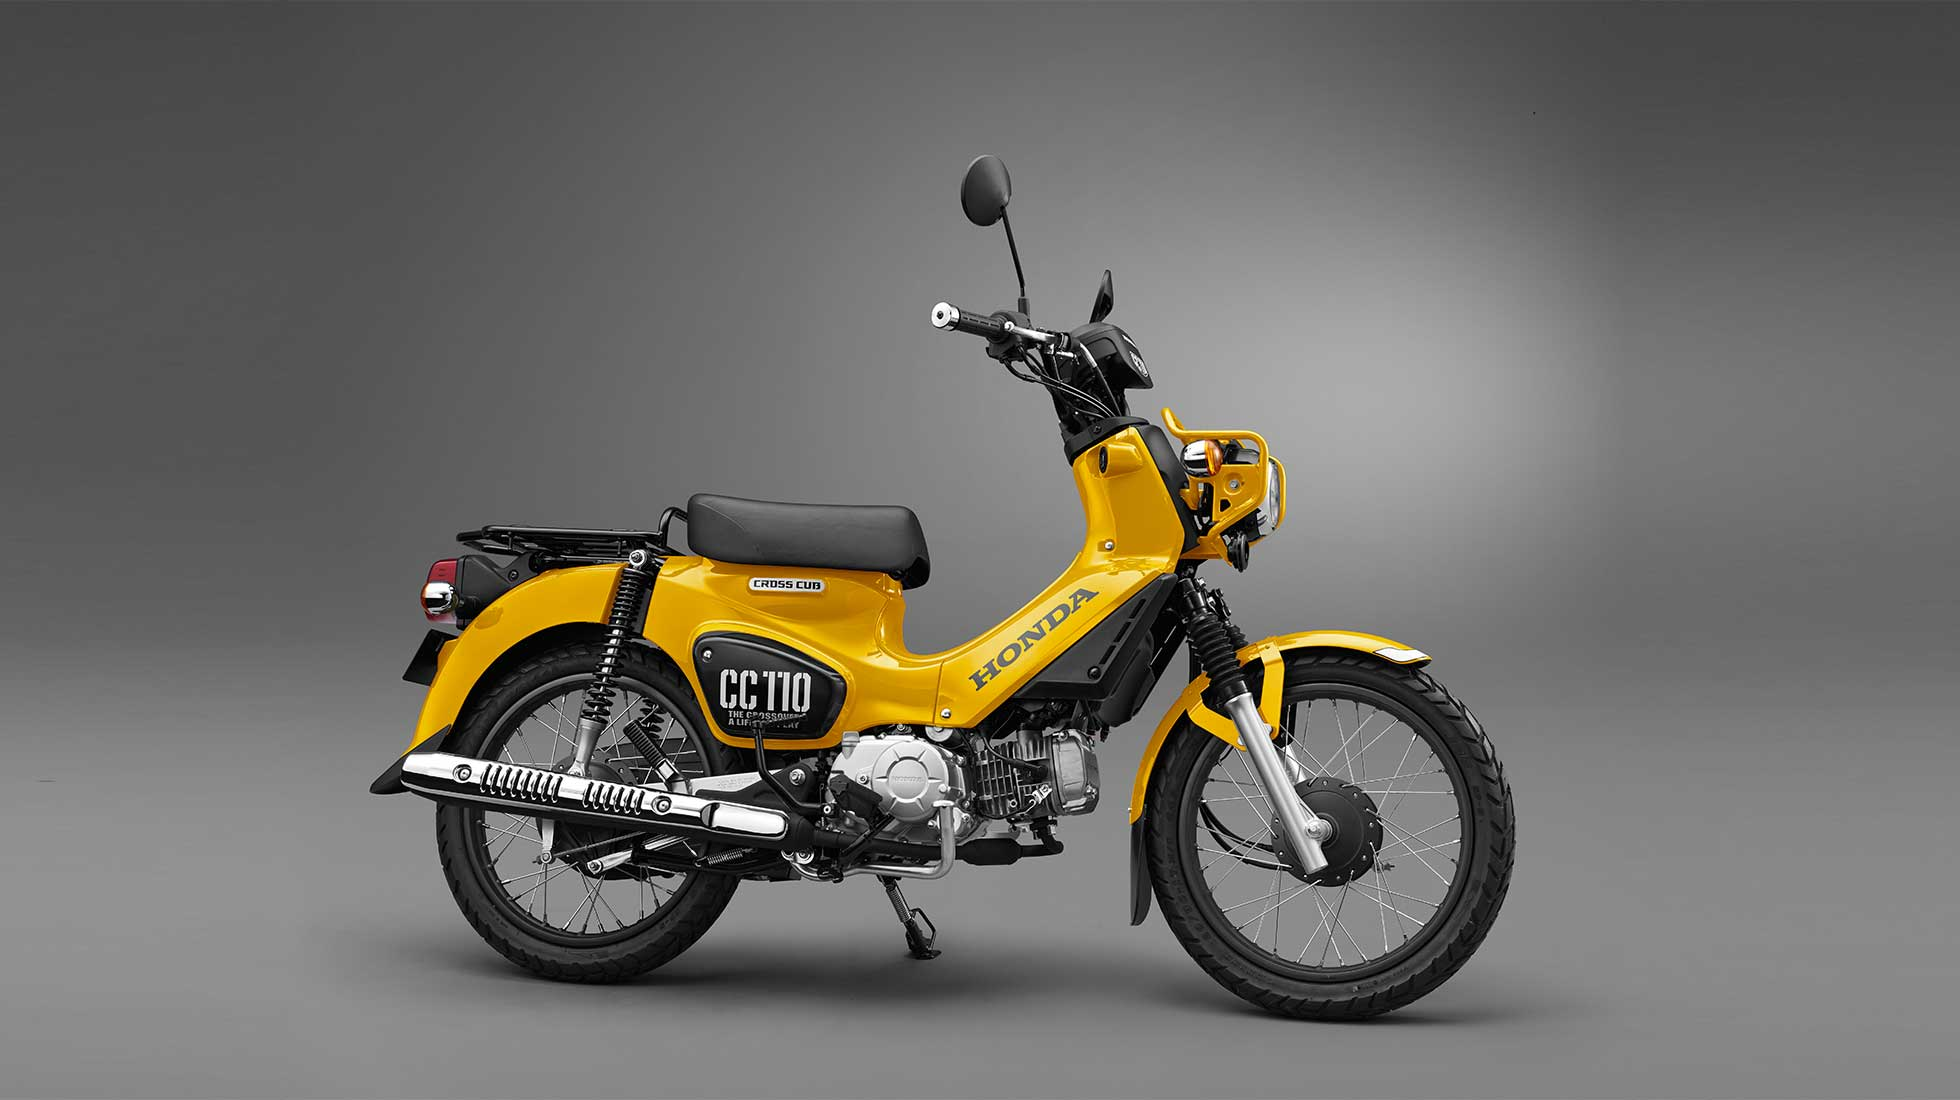 New Honda Motorcycles For Sale